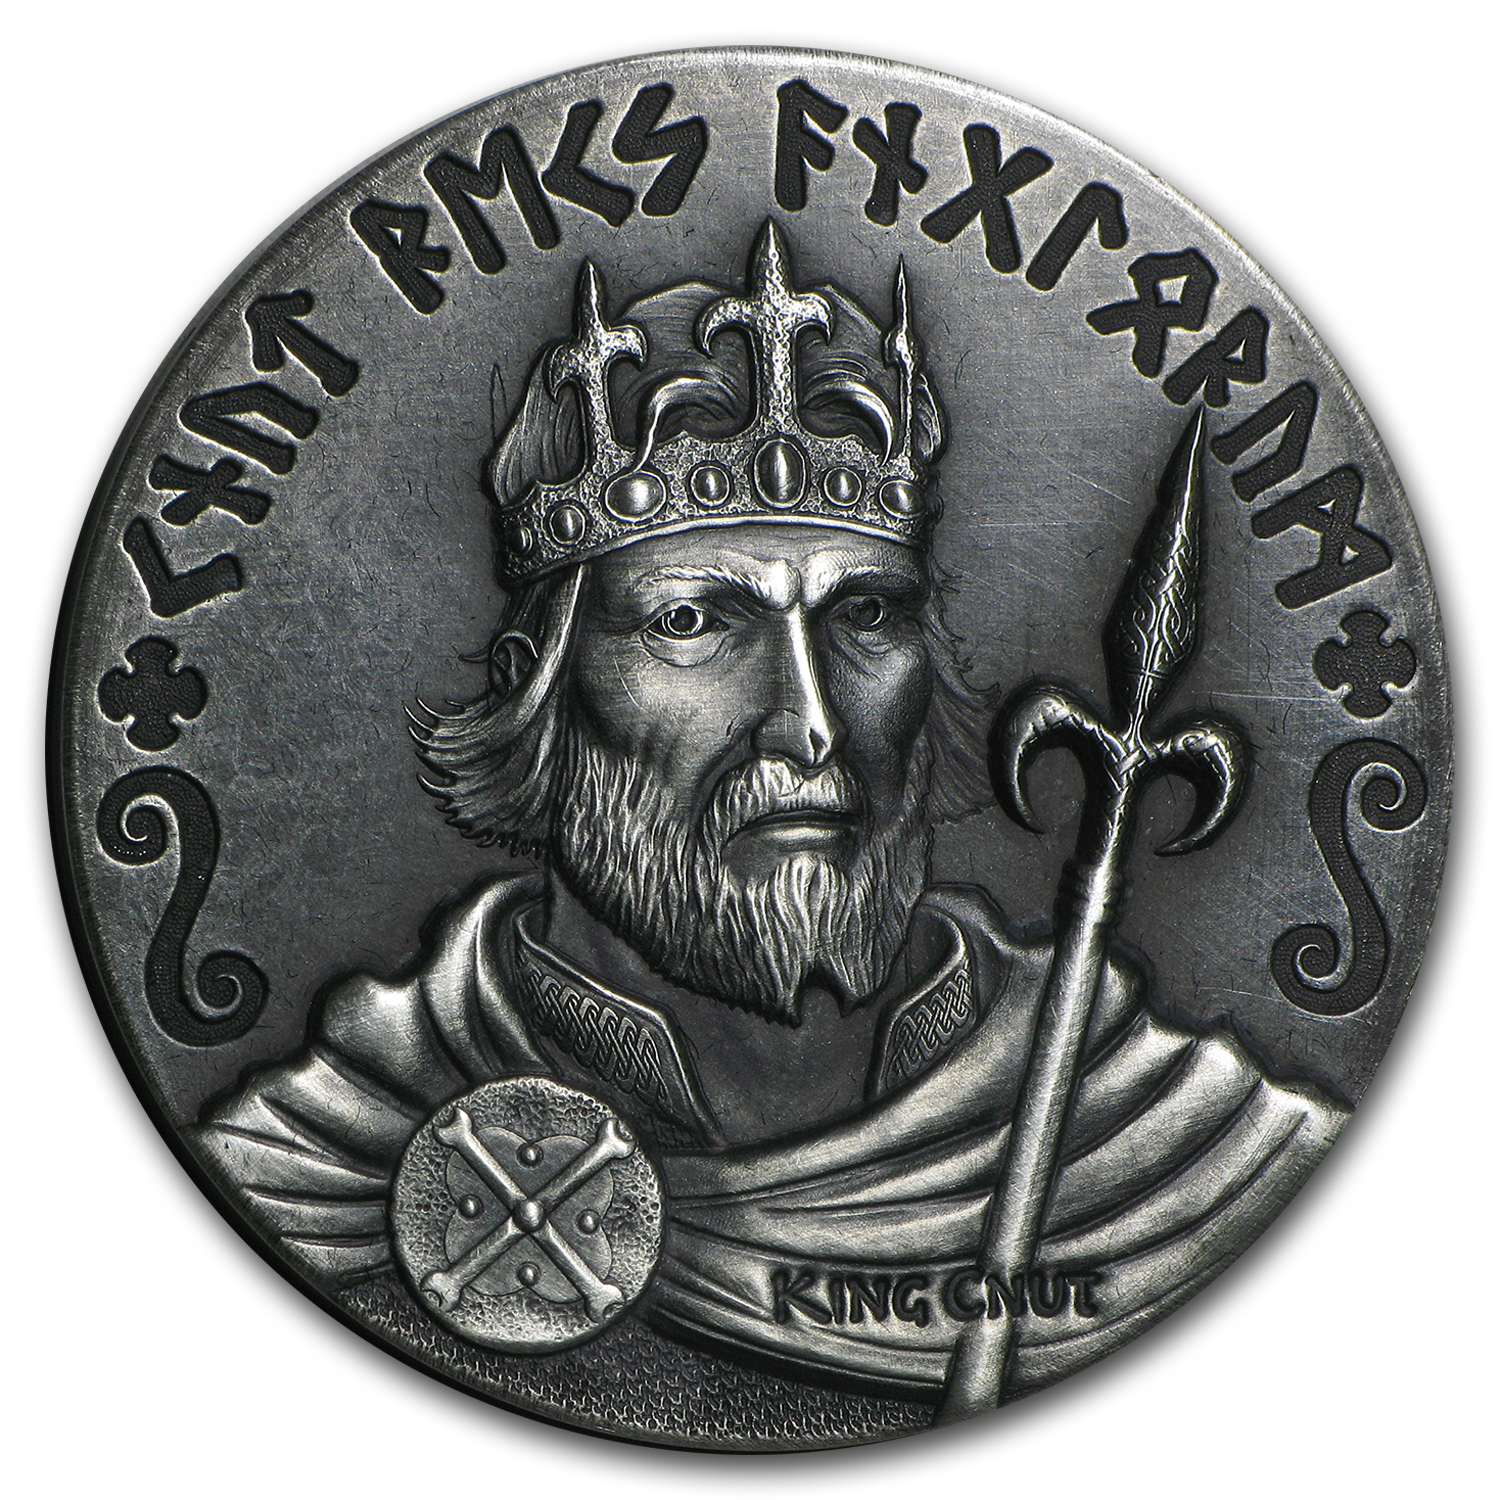 2 Oz Silver Coin Viking Series King Cnut Viking